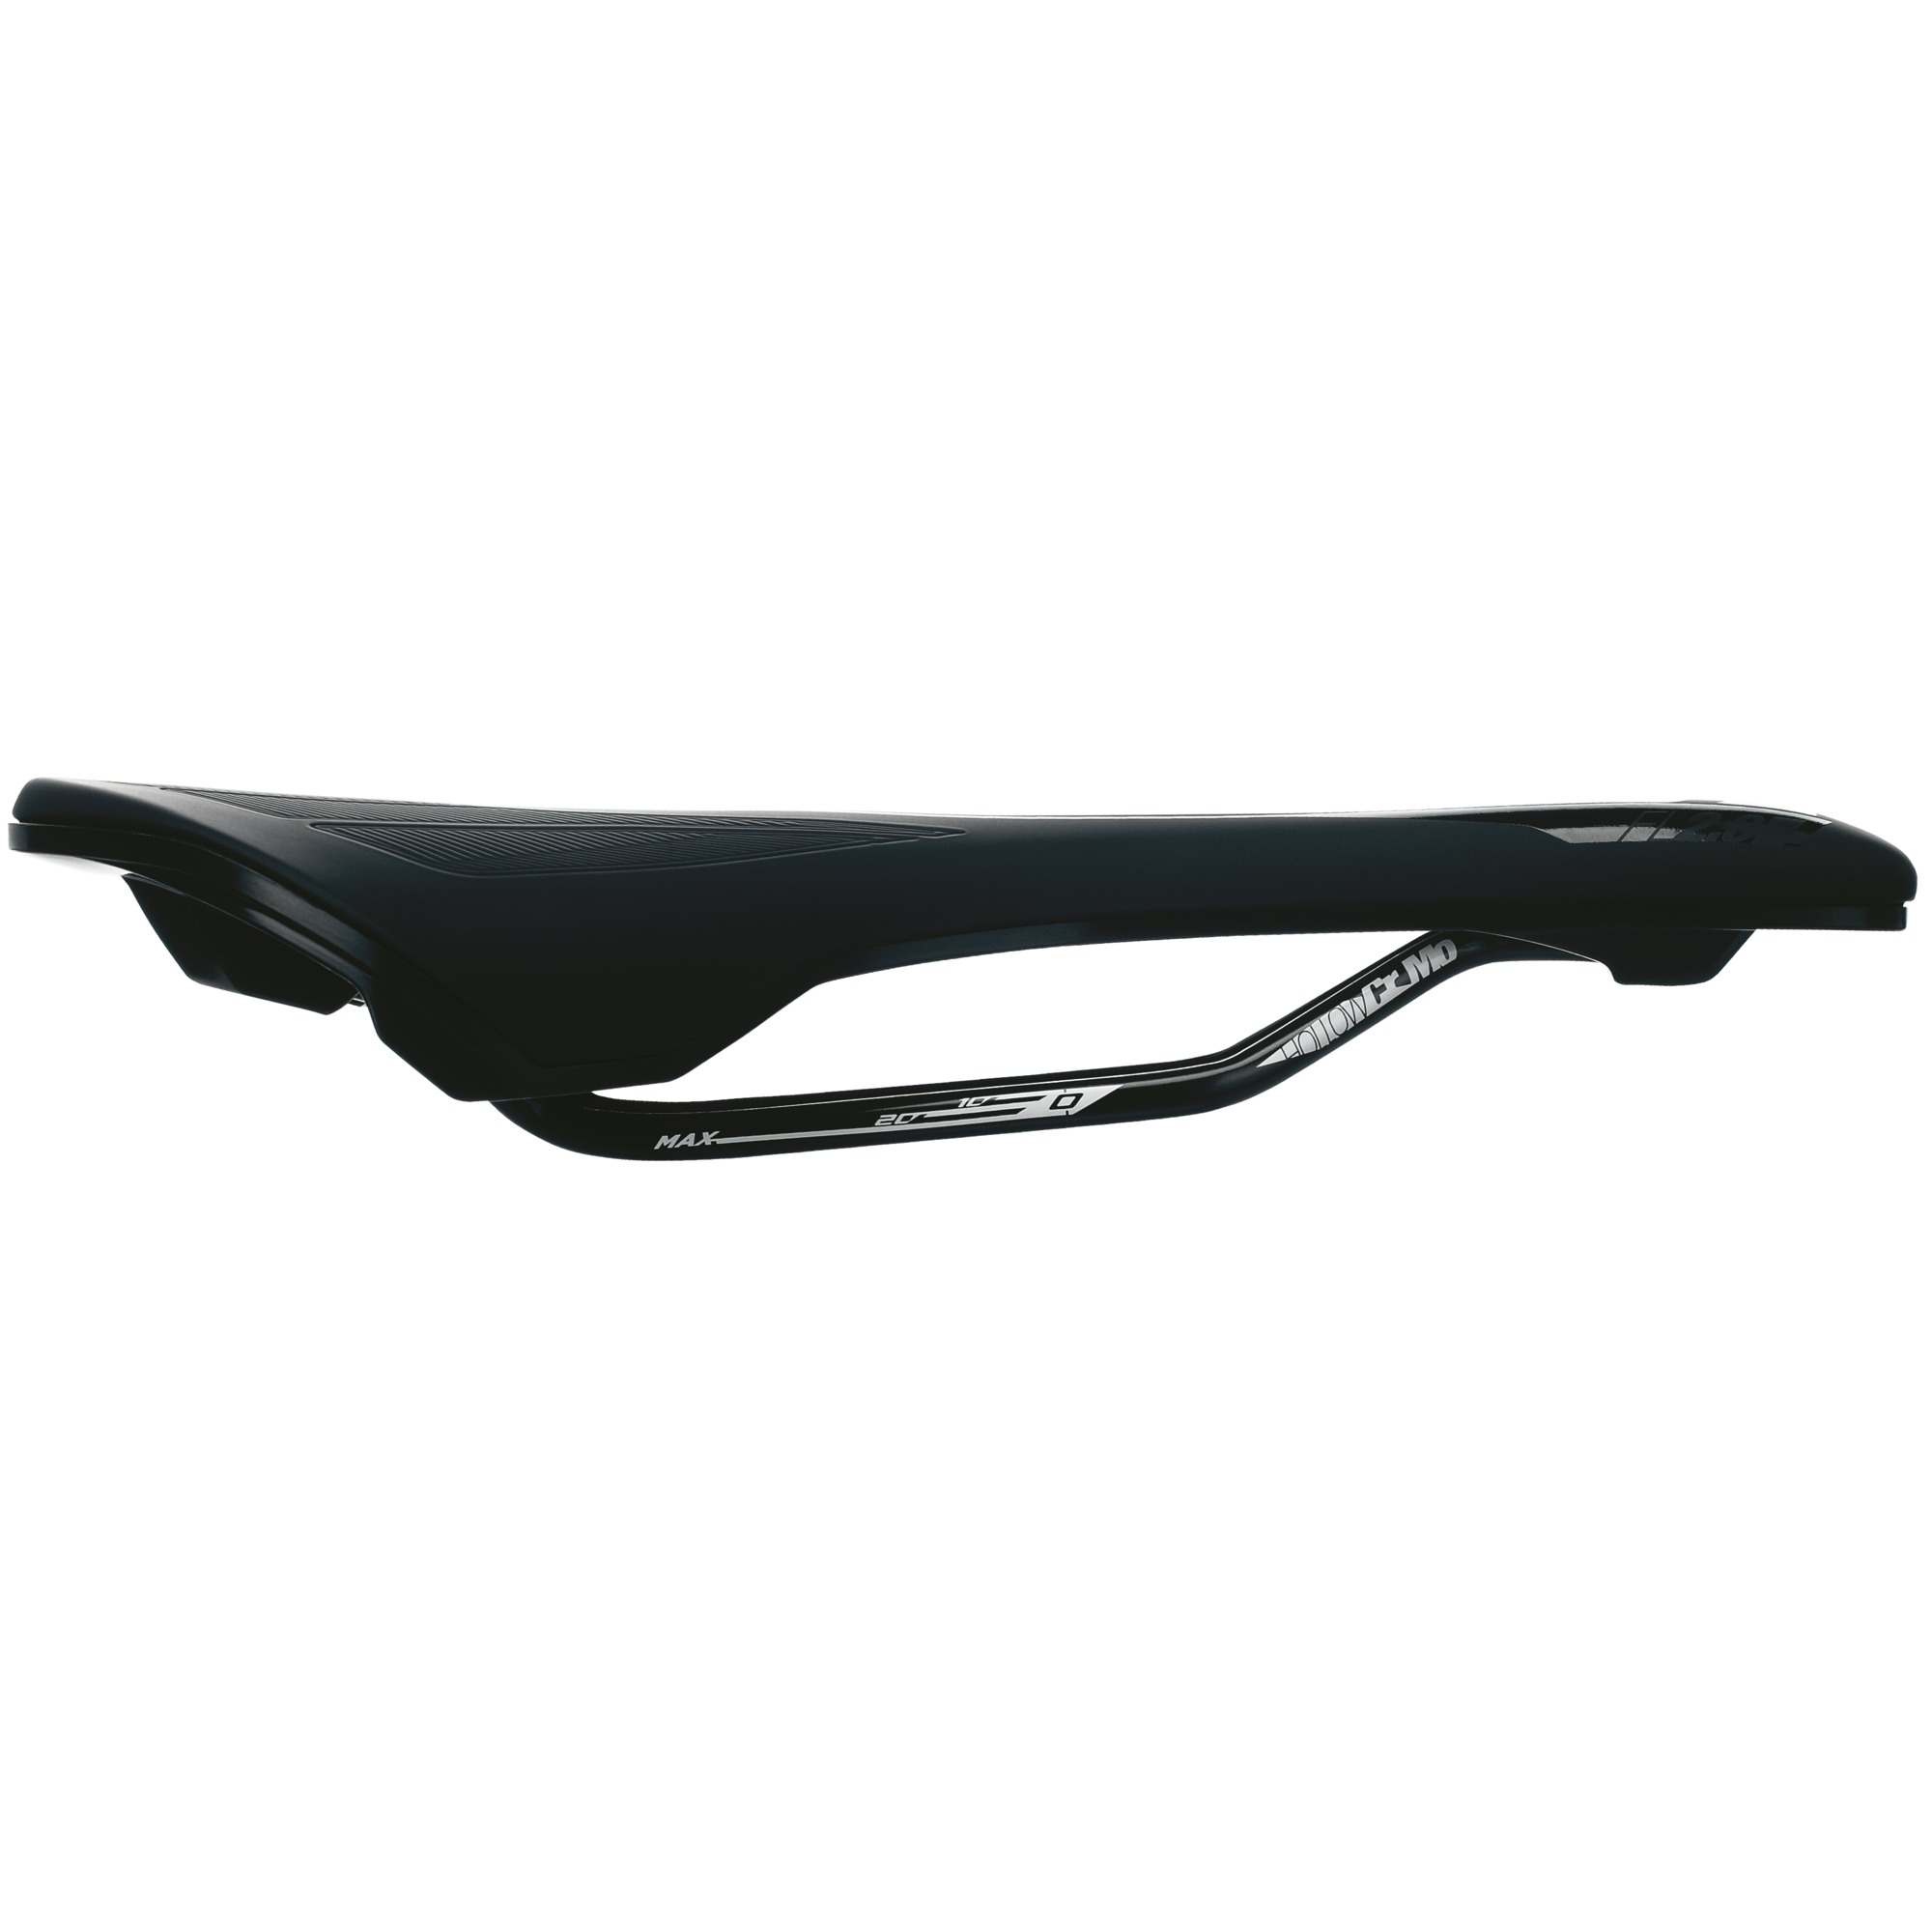 Syncros FL2.0 Saddle